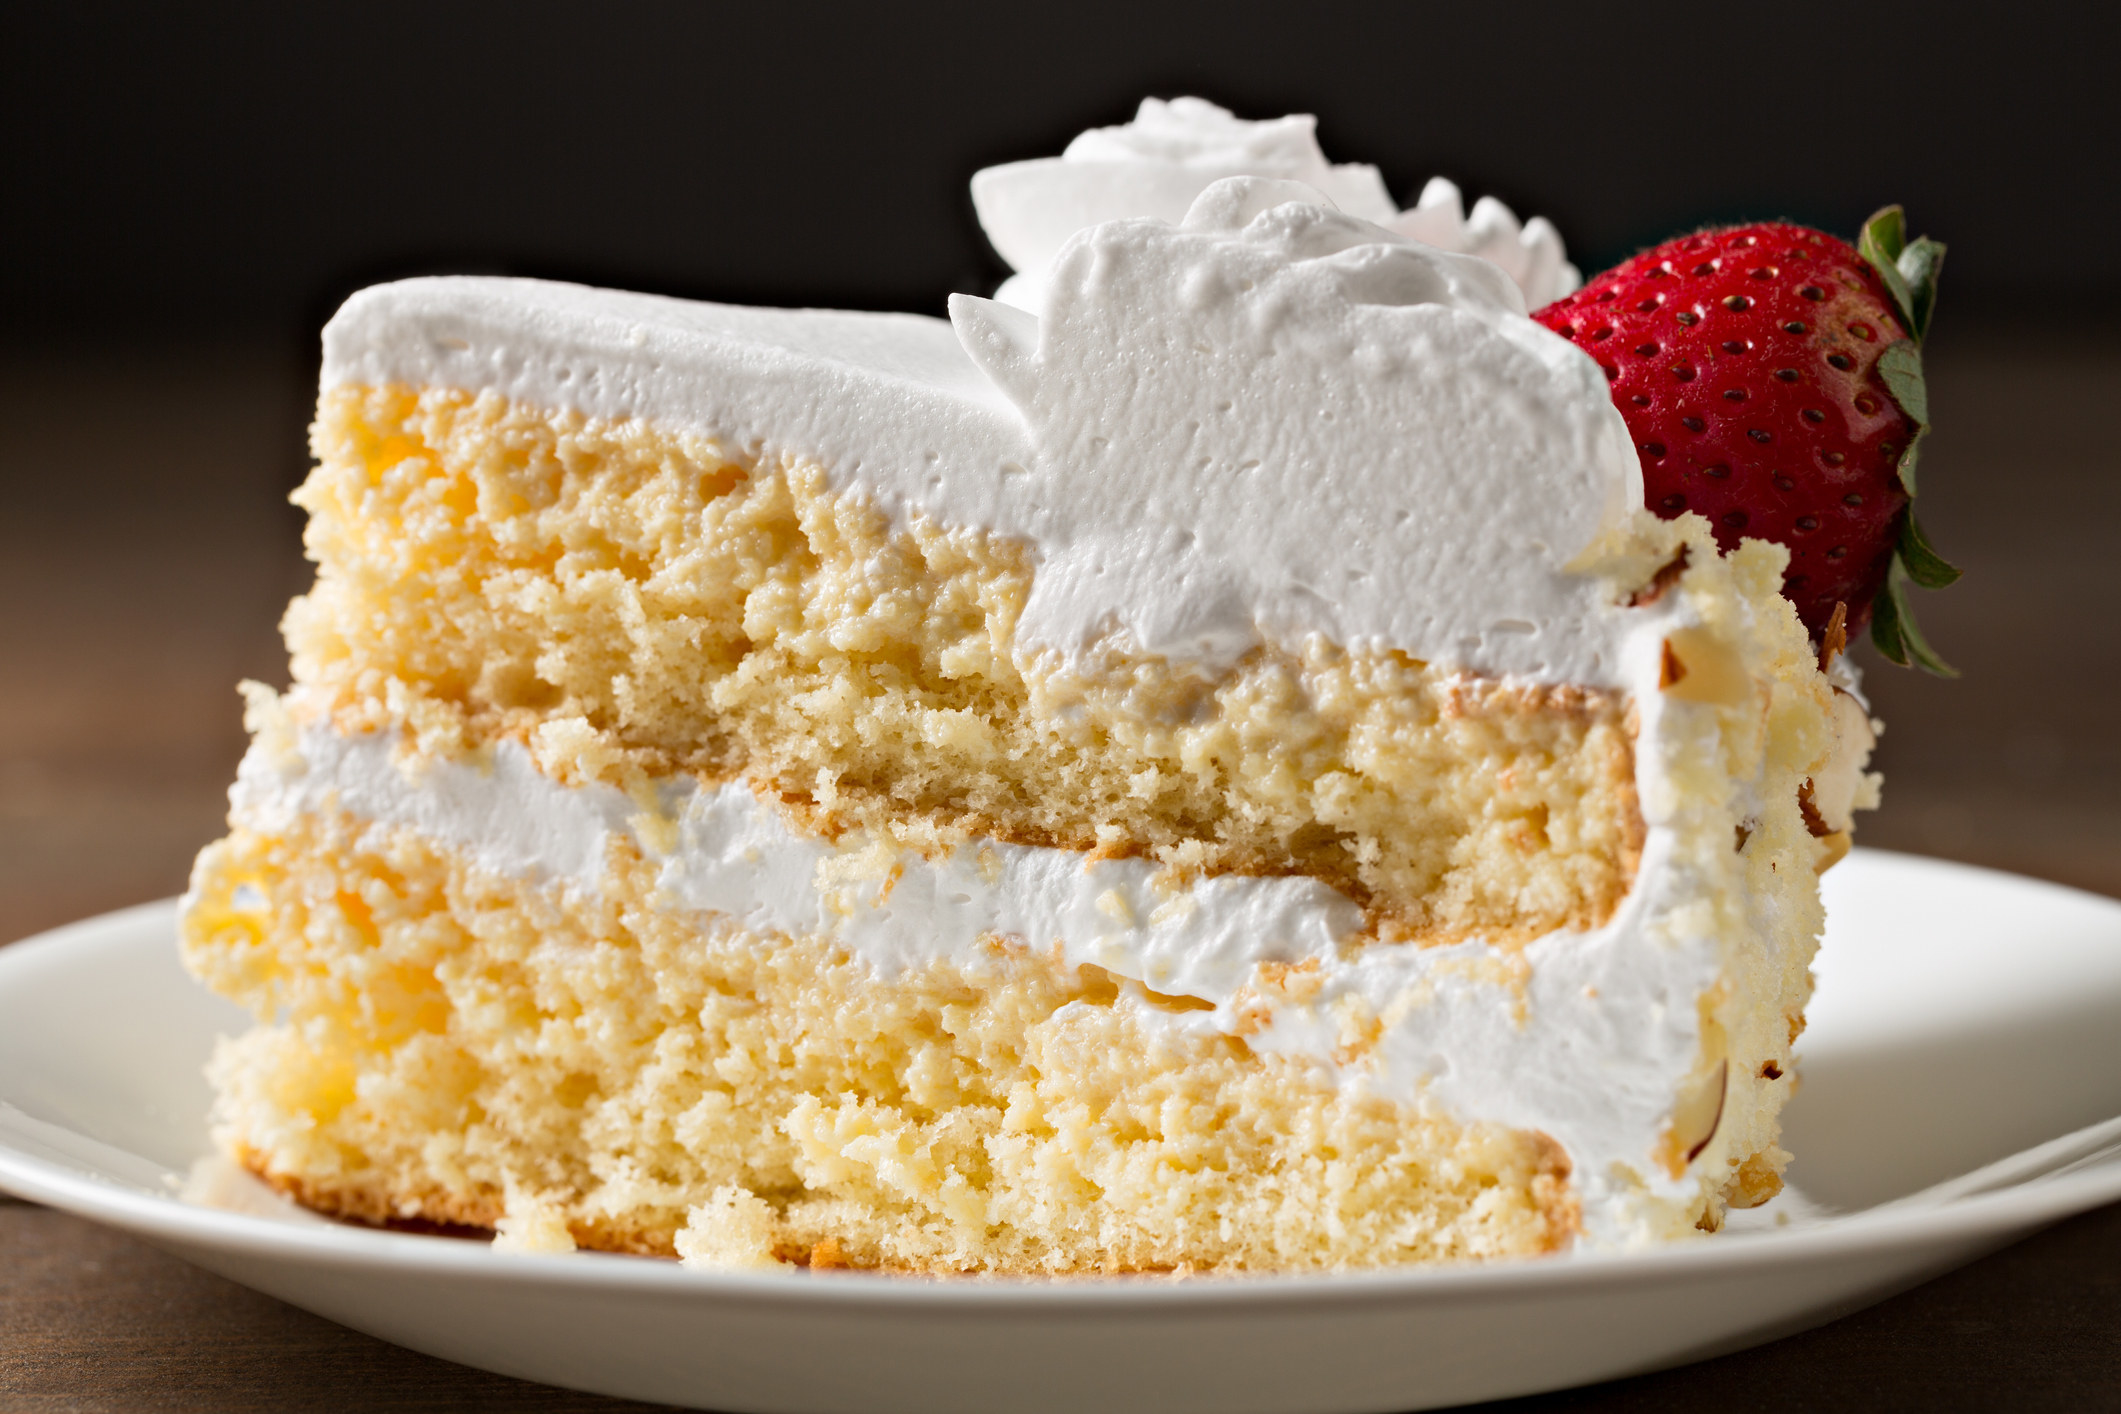 A slice of tres leches cake with a strawberry on it.